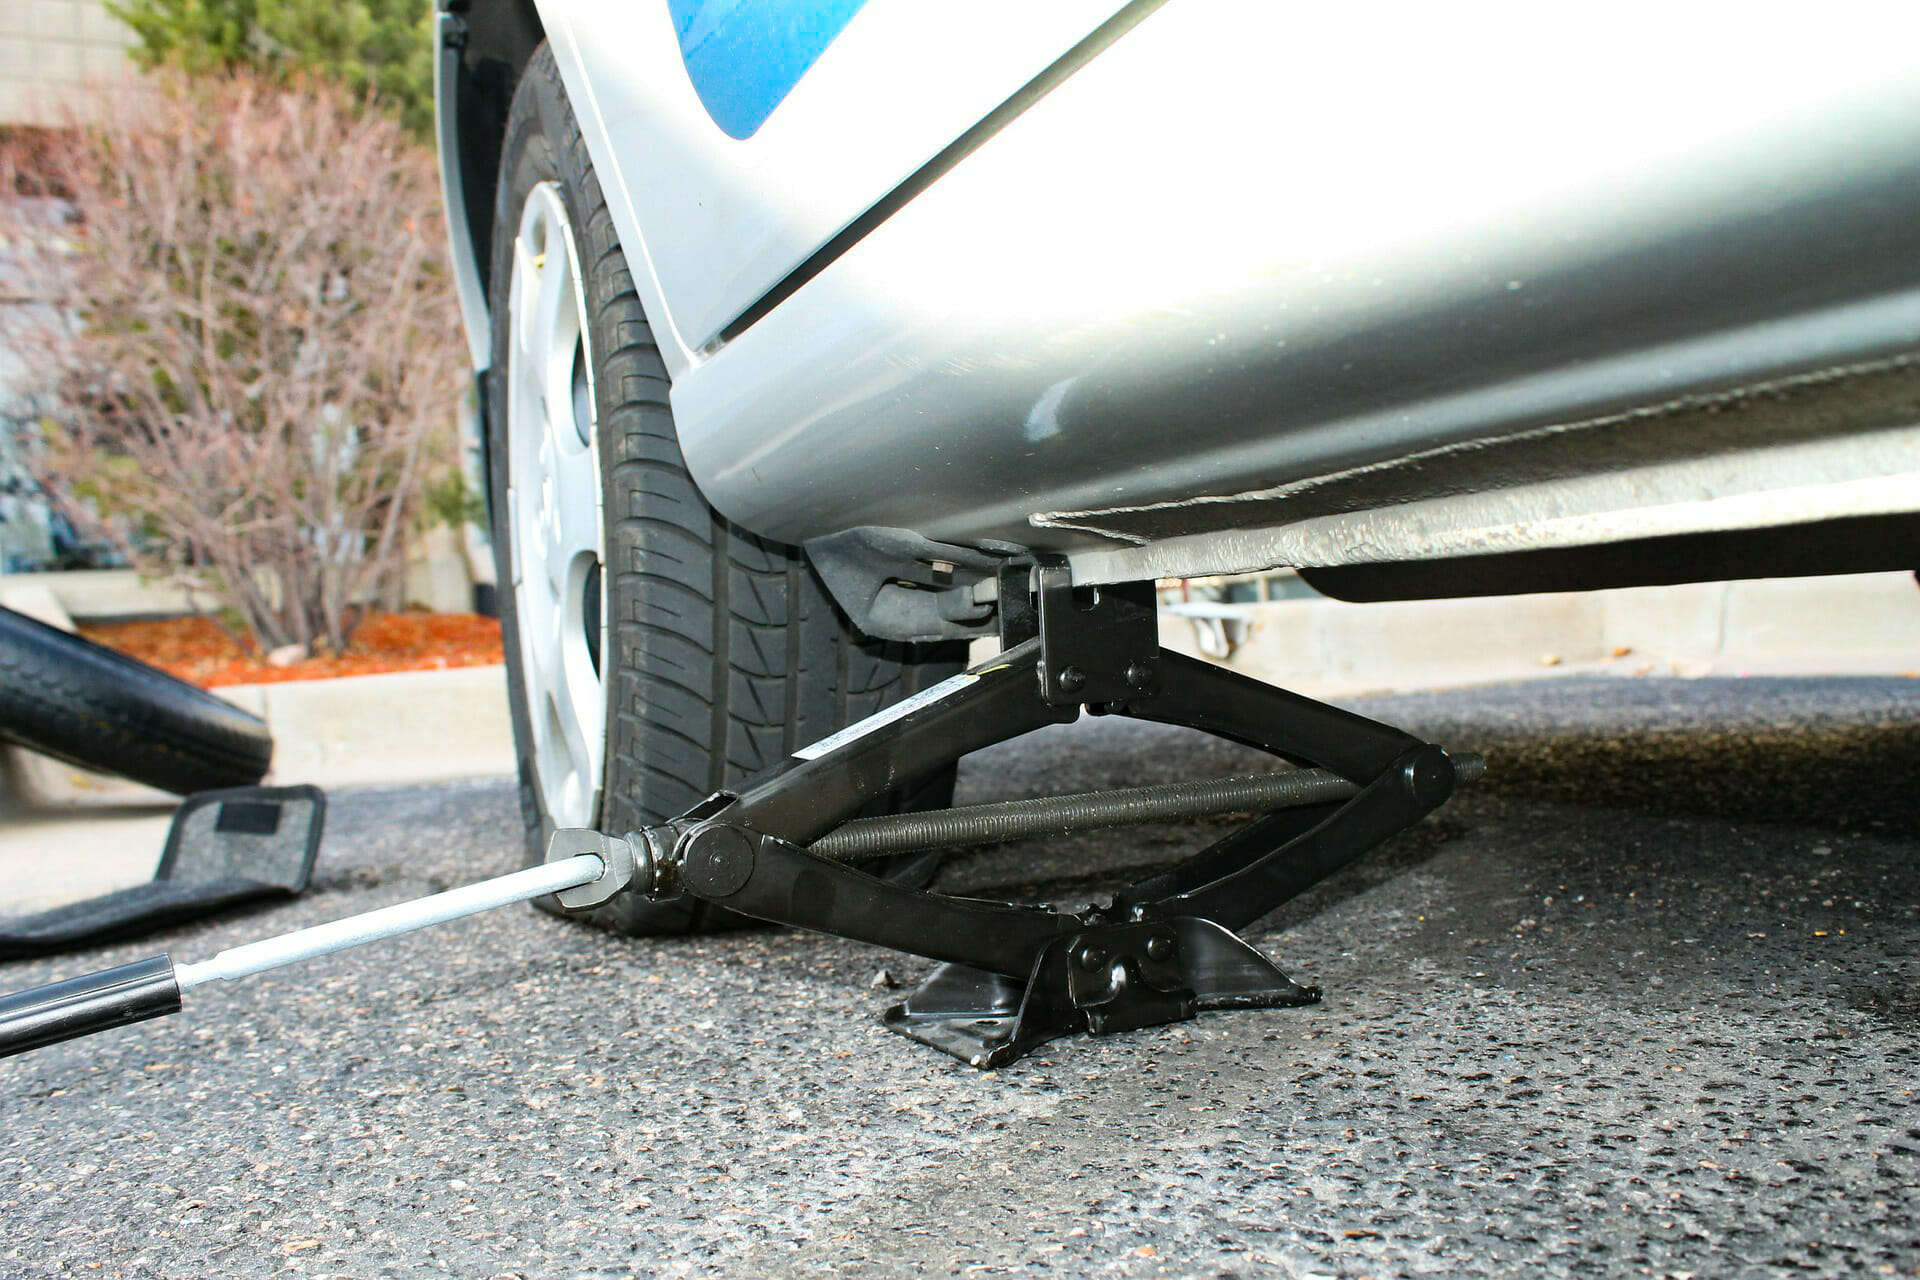 A car with a flat tyre on a jack - someone is about the change a tyre on this car - How to change a tyre